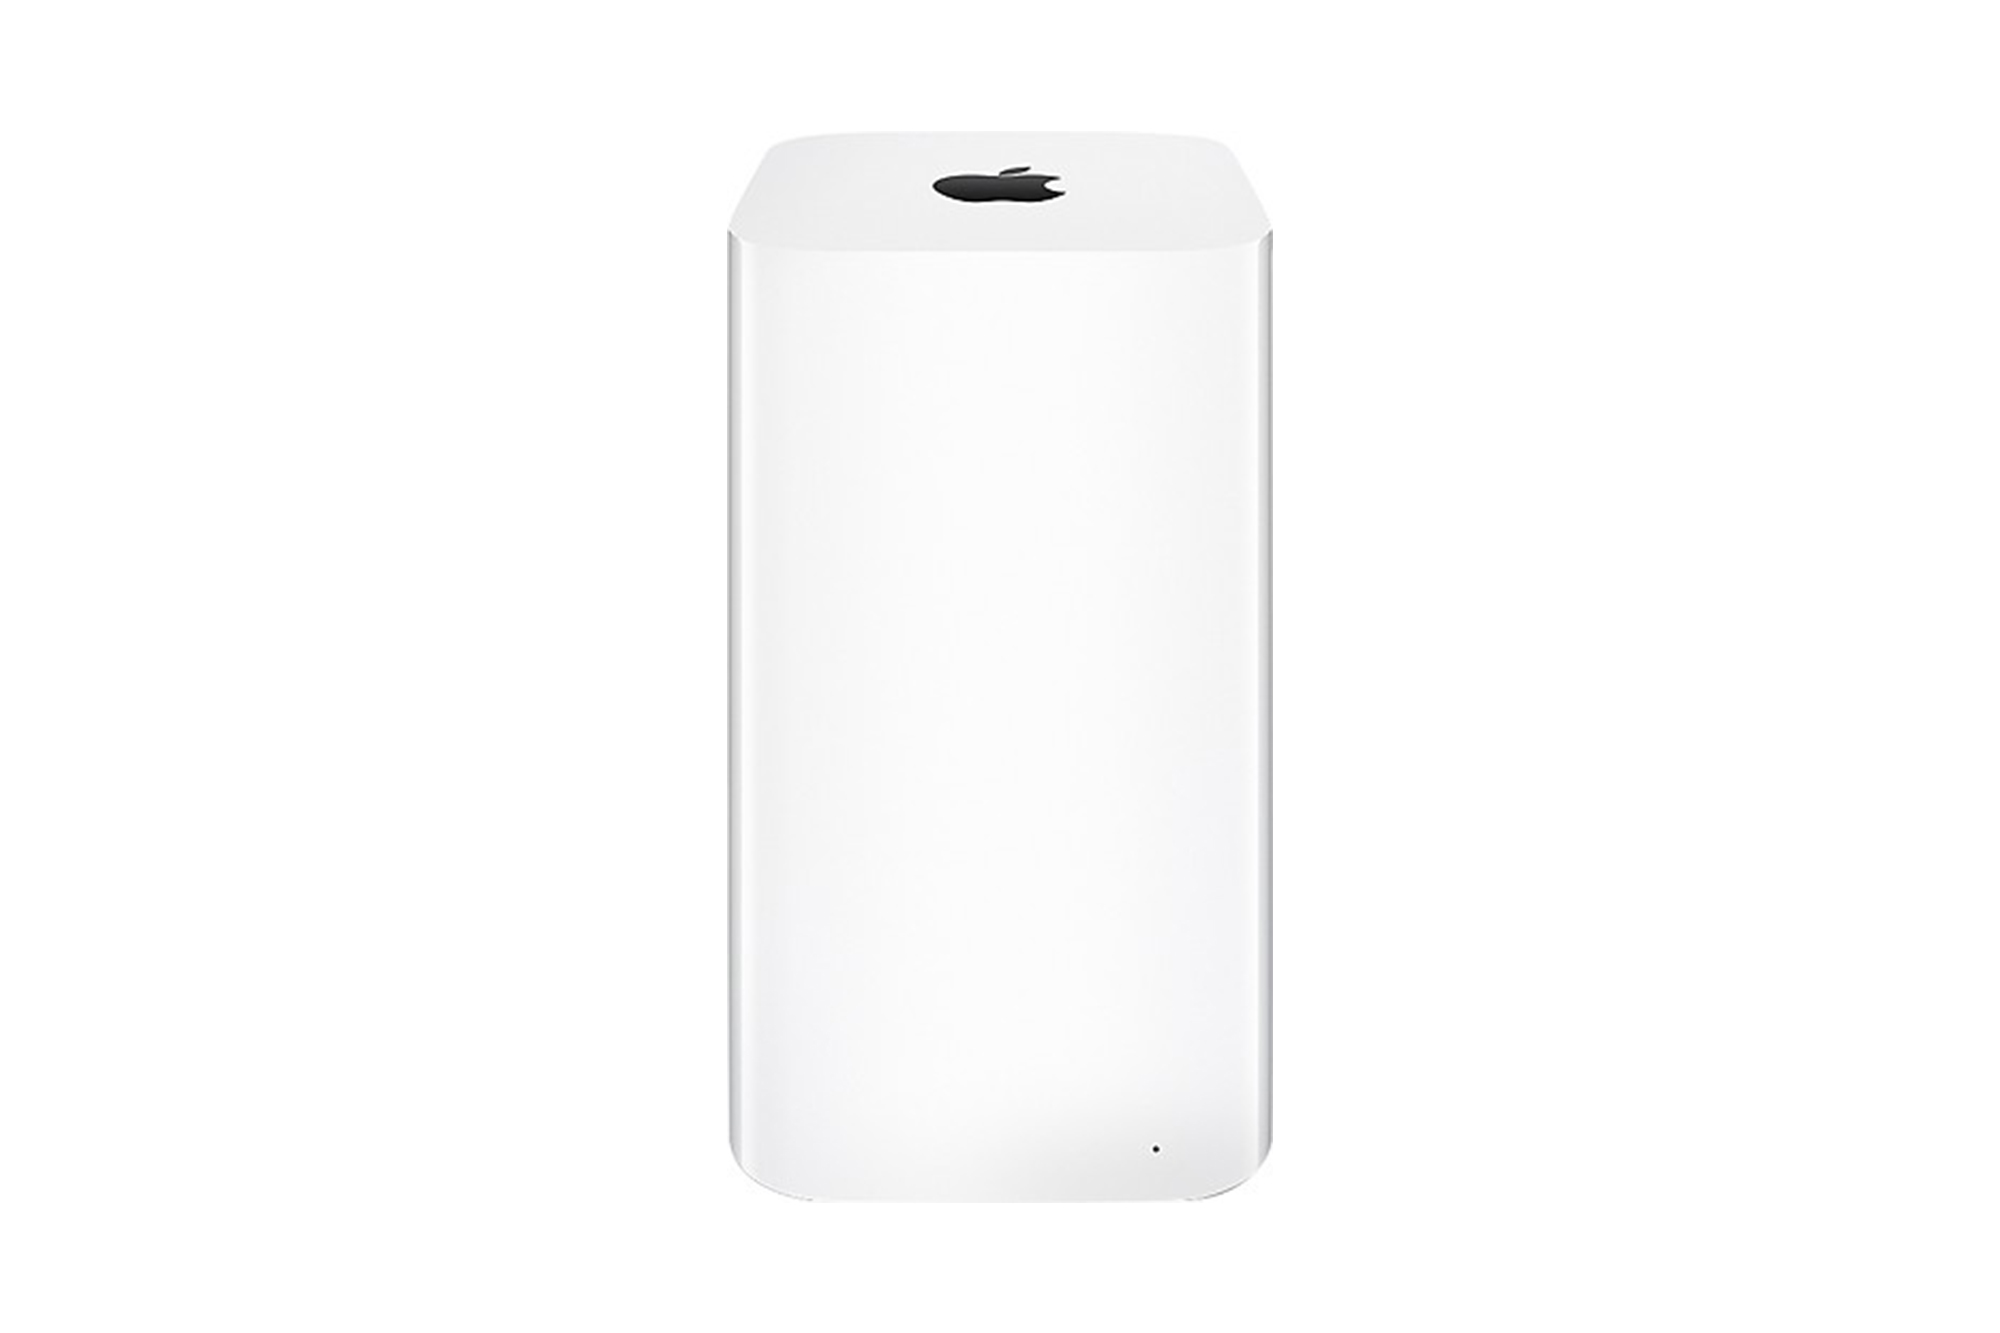 Apple Airport Extreme The Wirecutter 39s Best Deals Save 50 On An Ipad Air 2